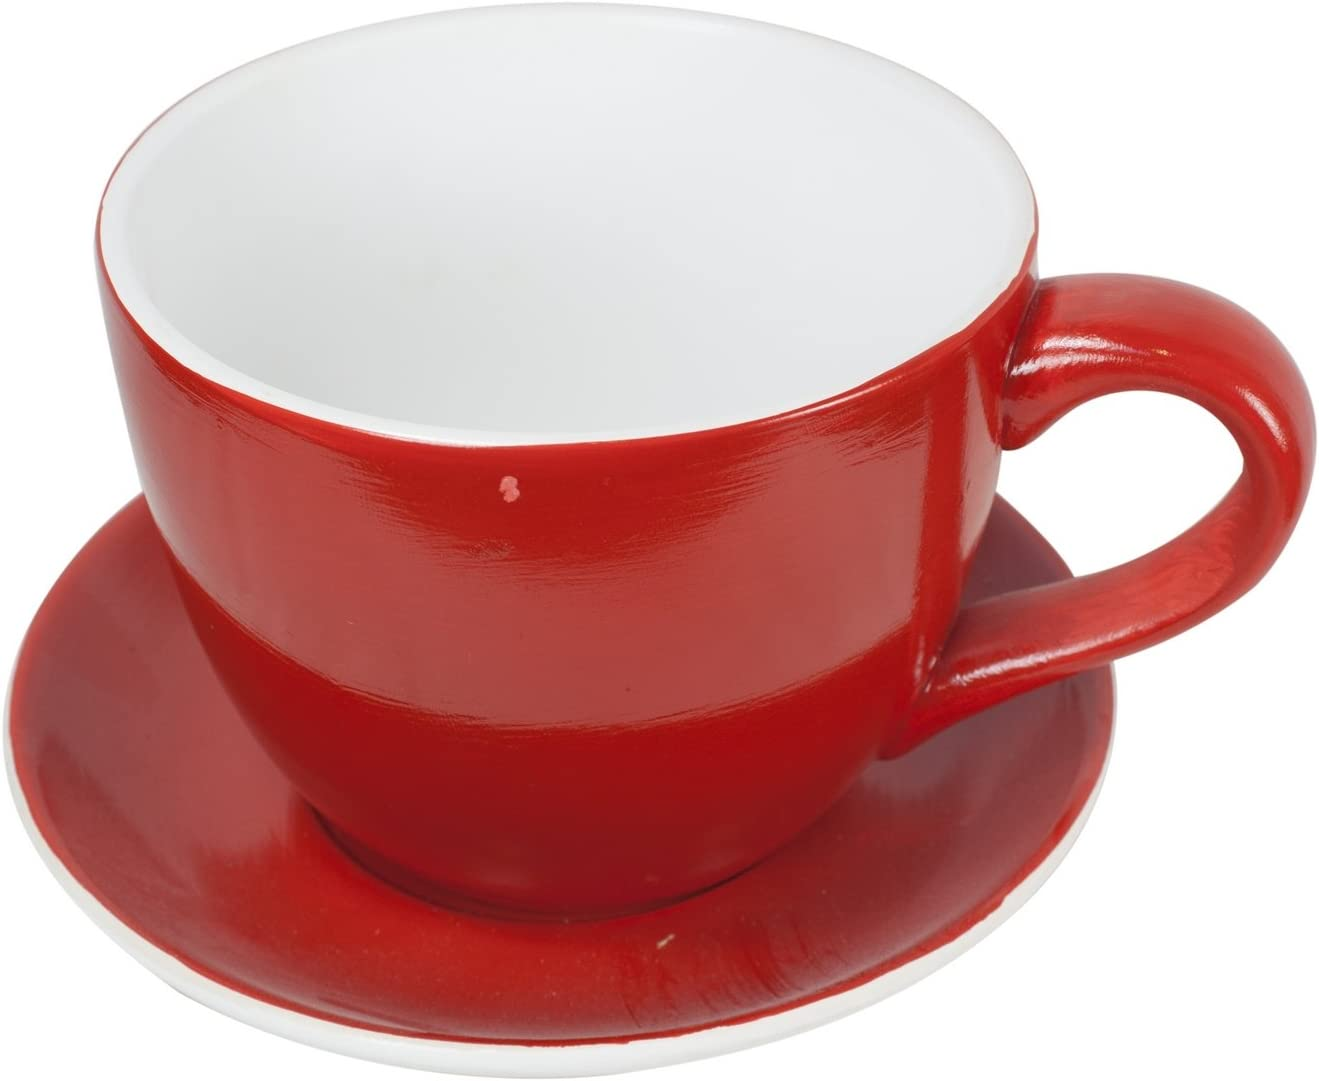 West5Products Giant Red Teacup & Saucer Planter